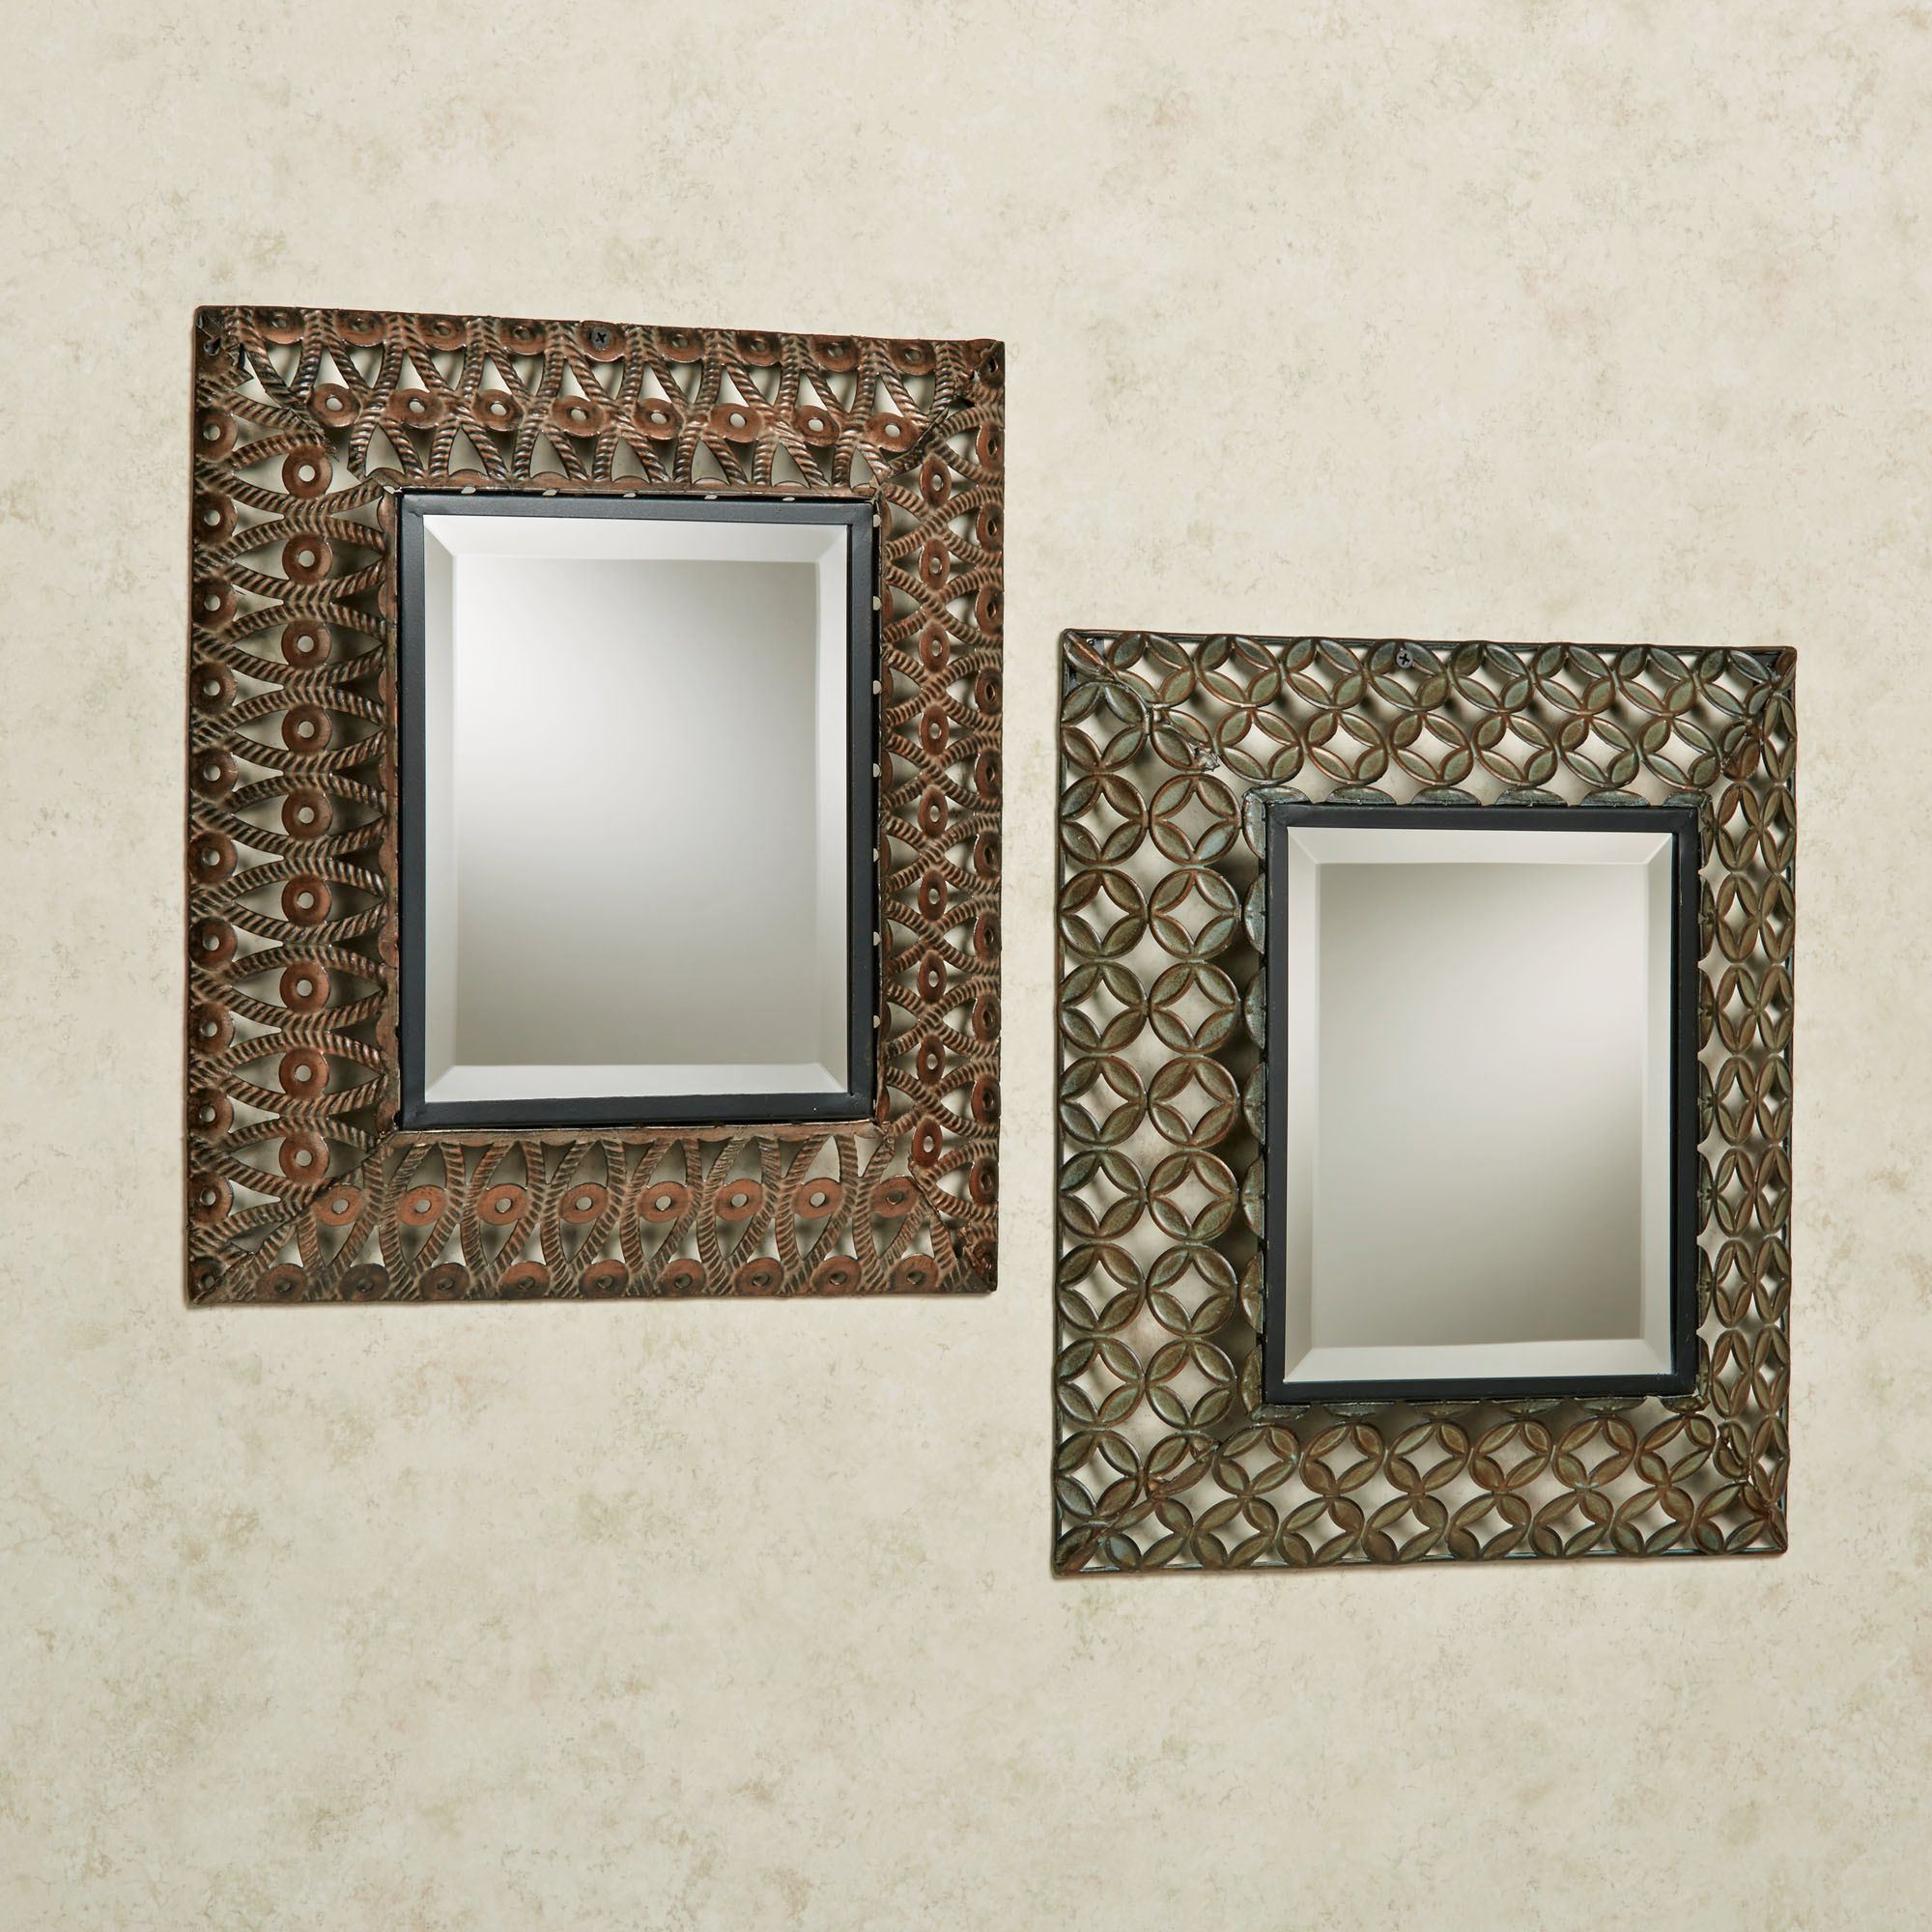 Wall decor deals at touch of class raghnall accent wall mirror set multi metallic set of two amipublicfo Image collections